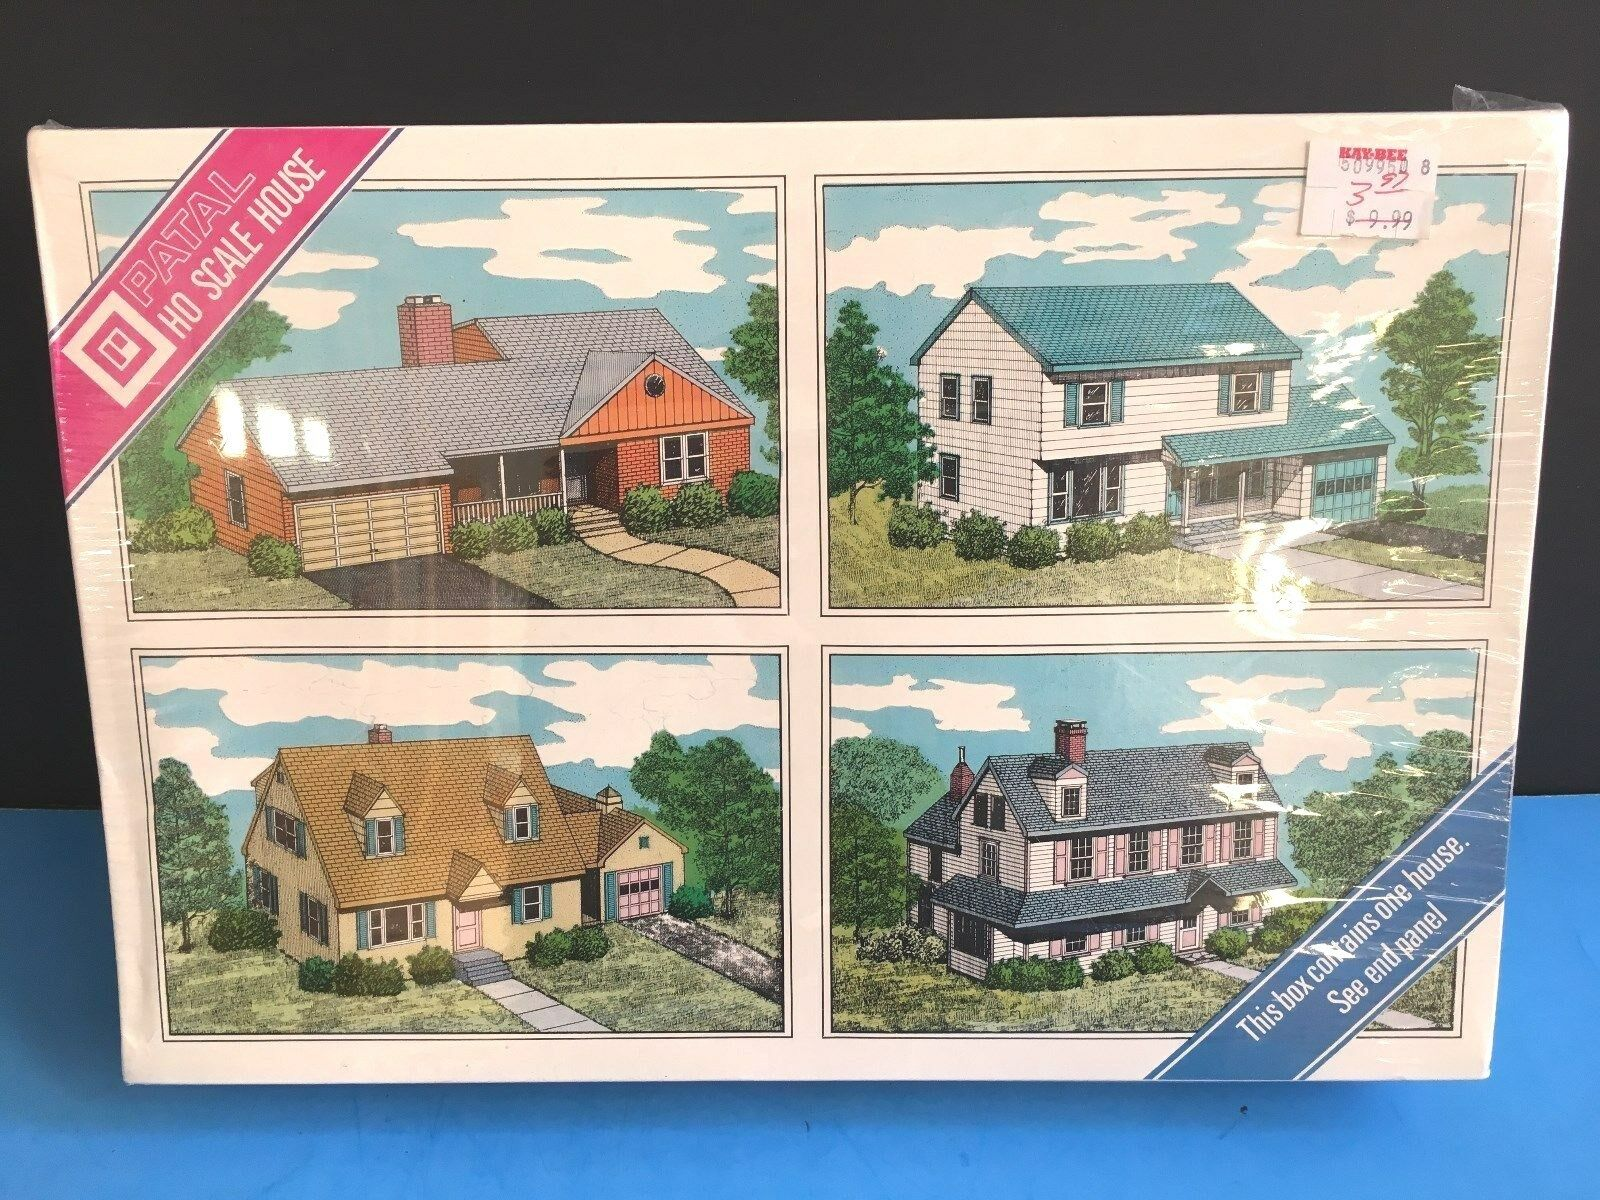 HO 1 1 1 87 Scale Model Building Kit Patal 304 Cape-Cod House   Sellado. 137